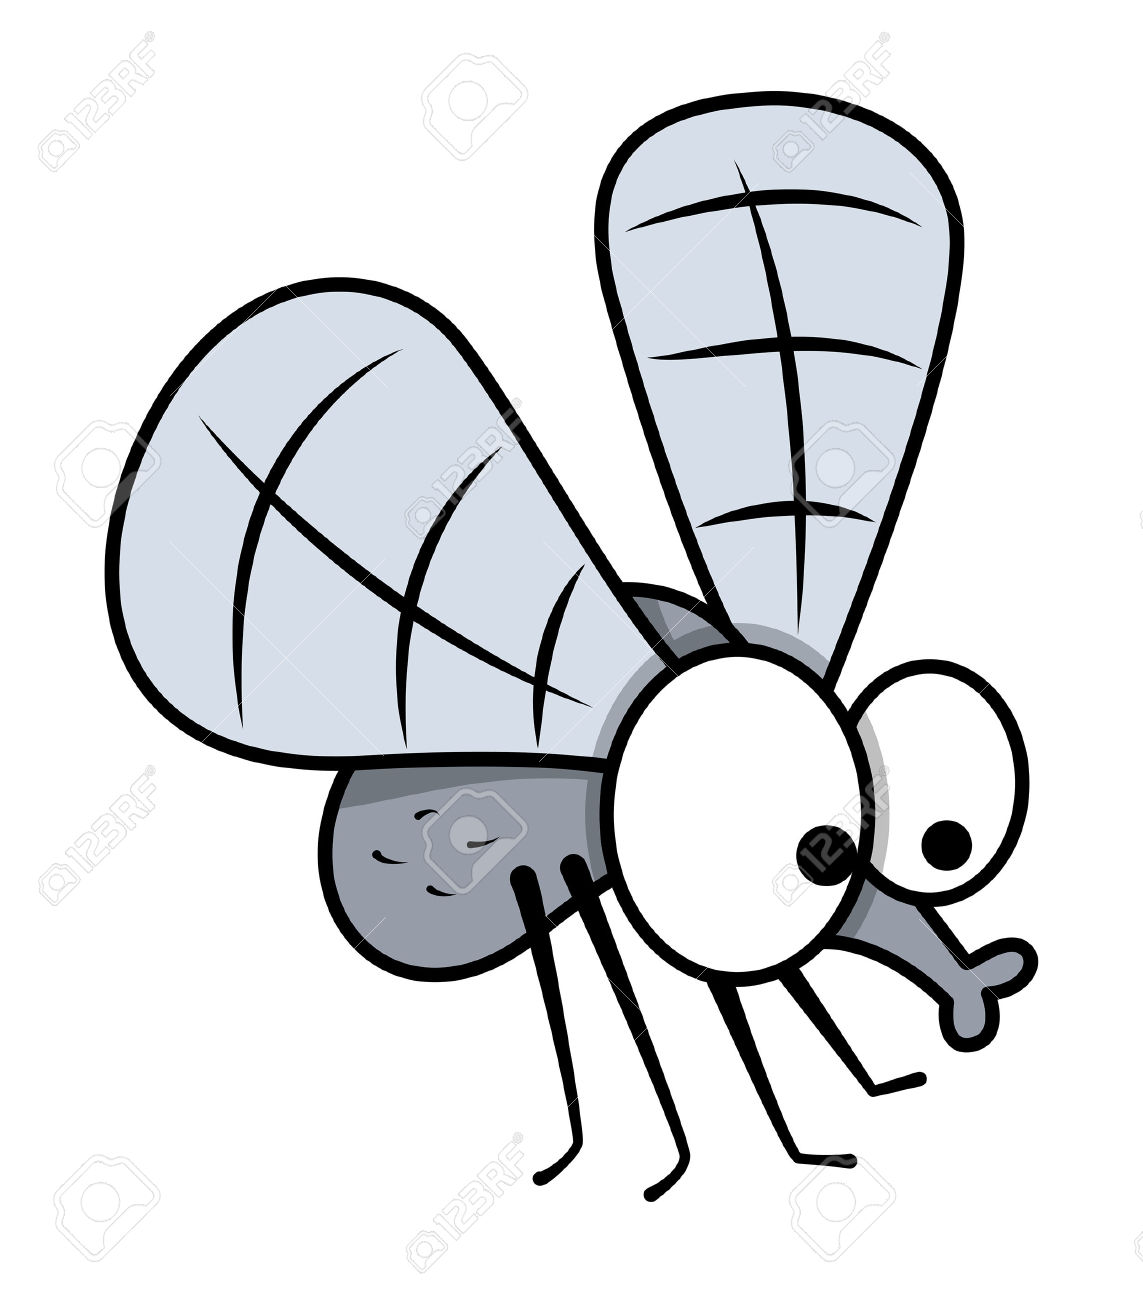 Midge clipart #2, Download drawings